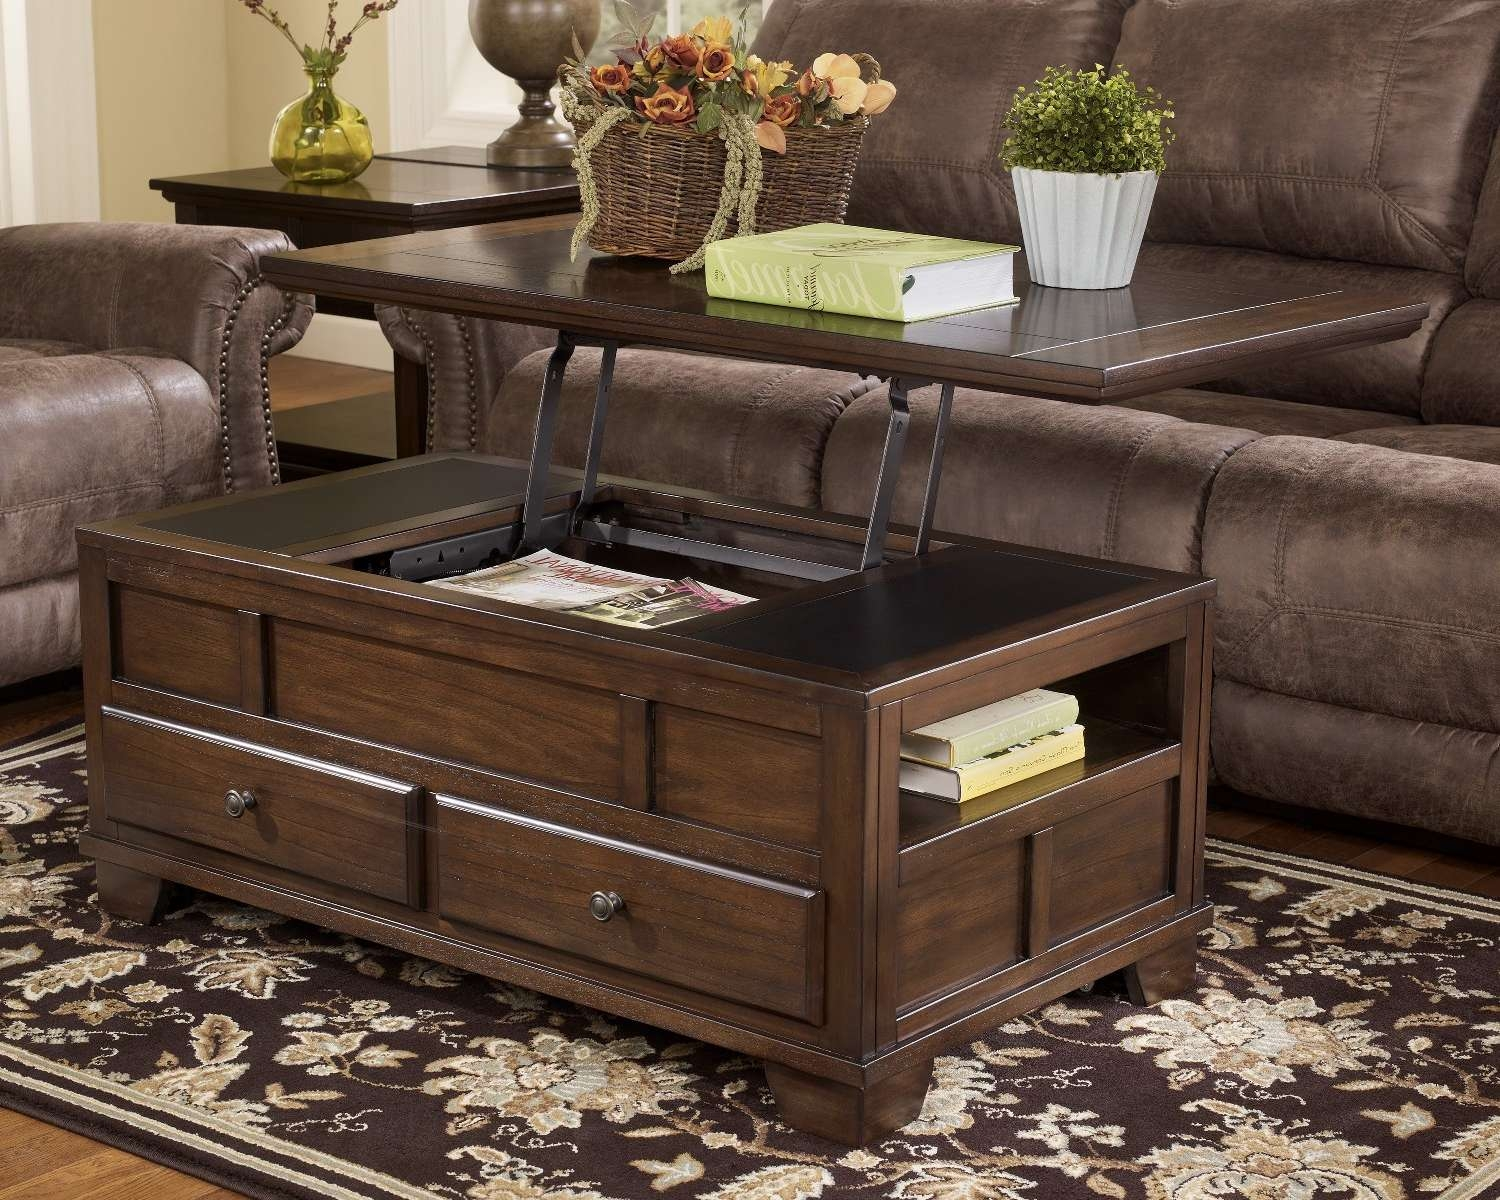 Coffee Tables : Storage Chest Coffee Table Trunks Design Ideas Regarding Most Recent Dark Wood Coffee Table Storages (View 4 of 10)